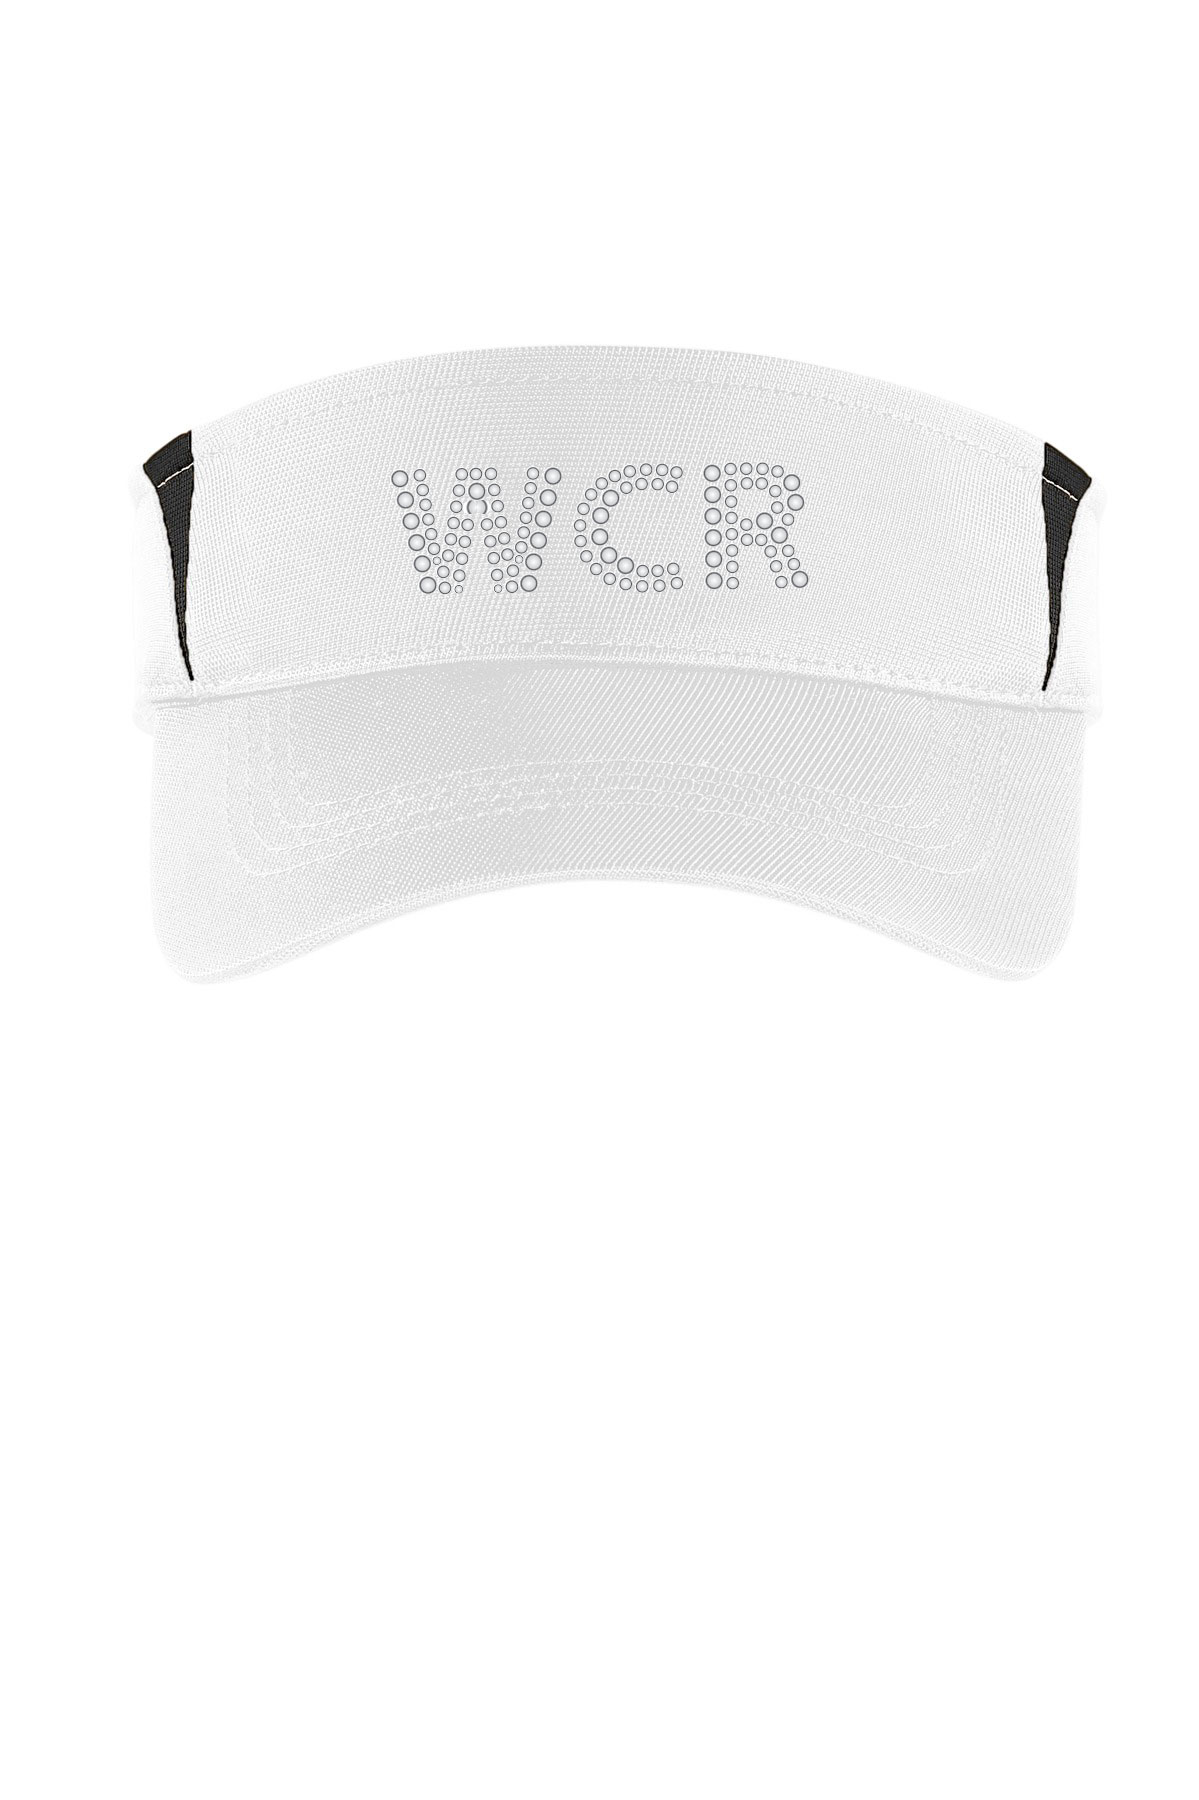 WCR Ladies Colorblocked Visor